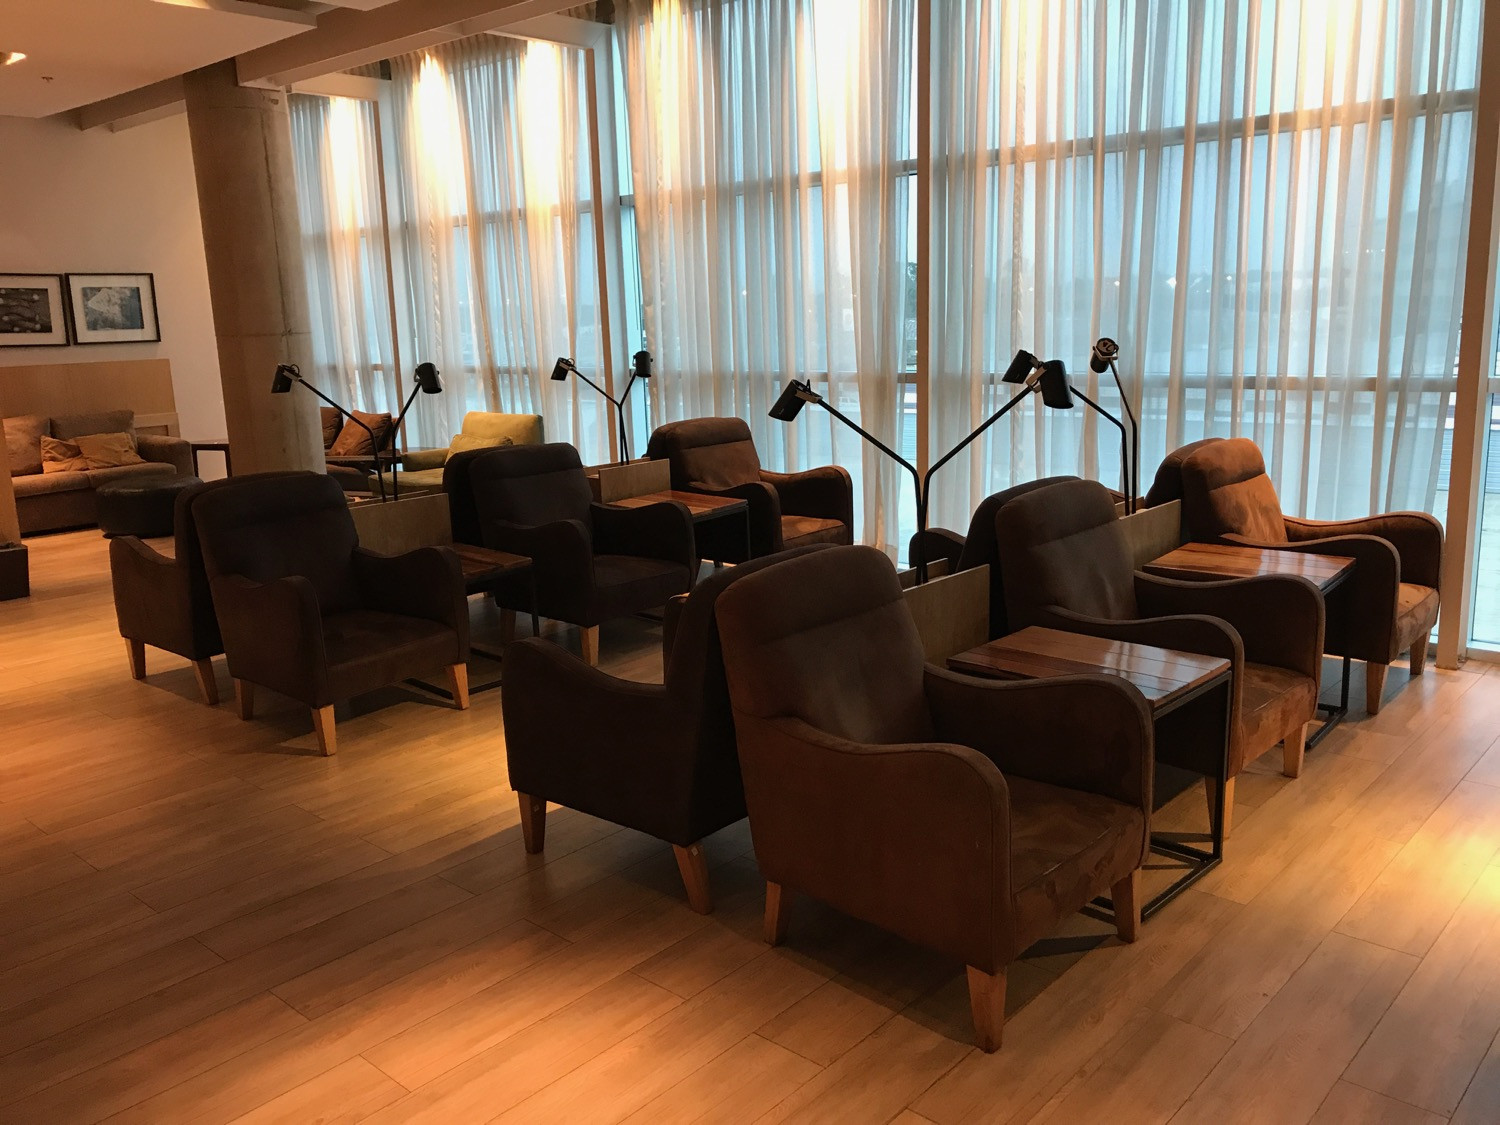 amazon hardwood flooring toronto of review star alliance lounge buenos aires eze live and lets fly pertaining to as you enter the lounge pick up a voucher with the internet code internet worked very well for most of my stay though for one period of about 15 minutes